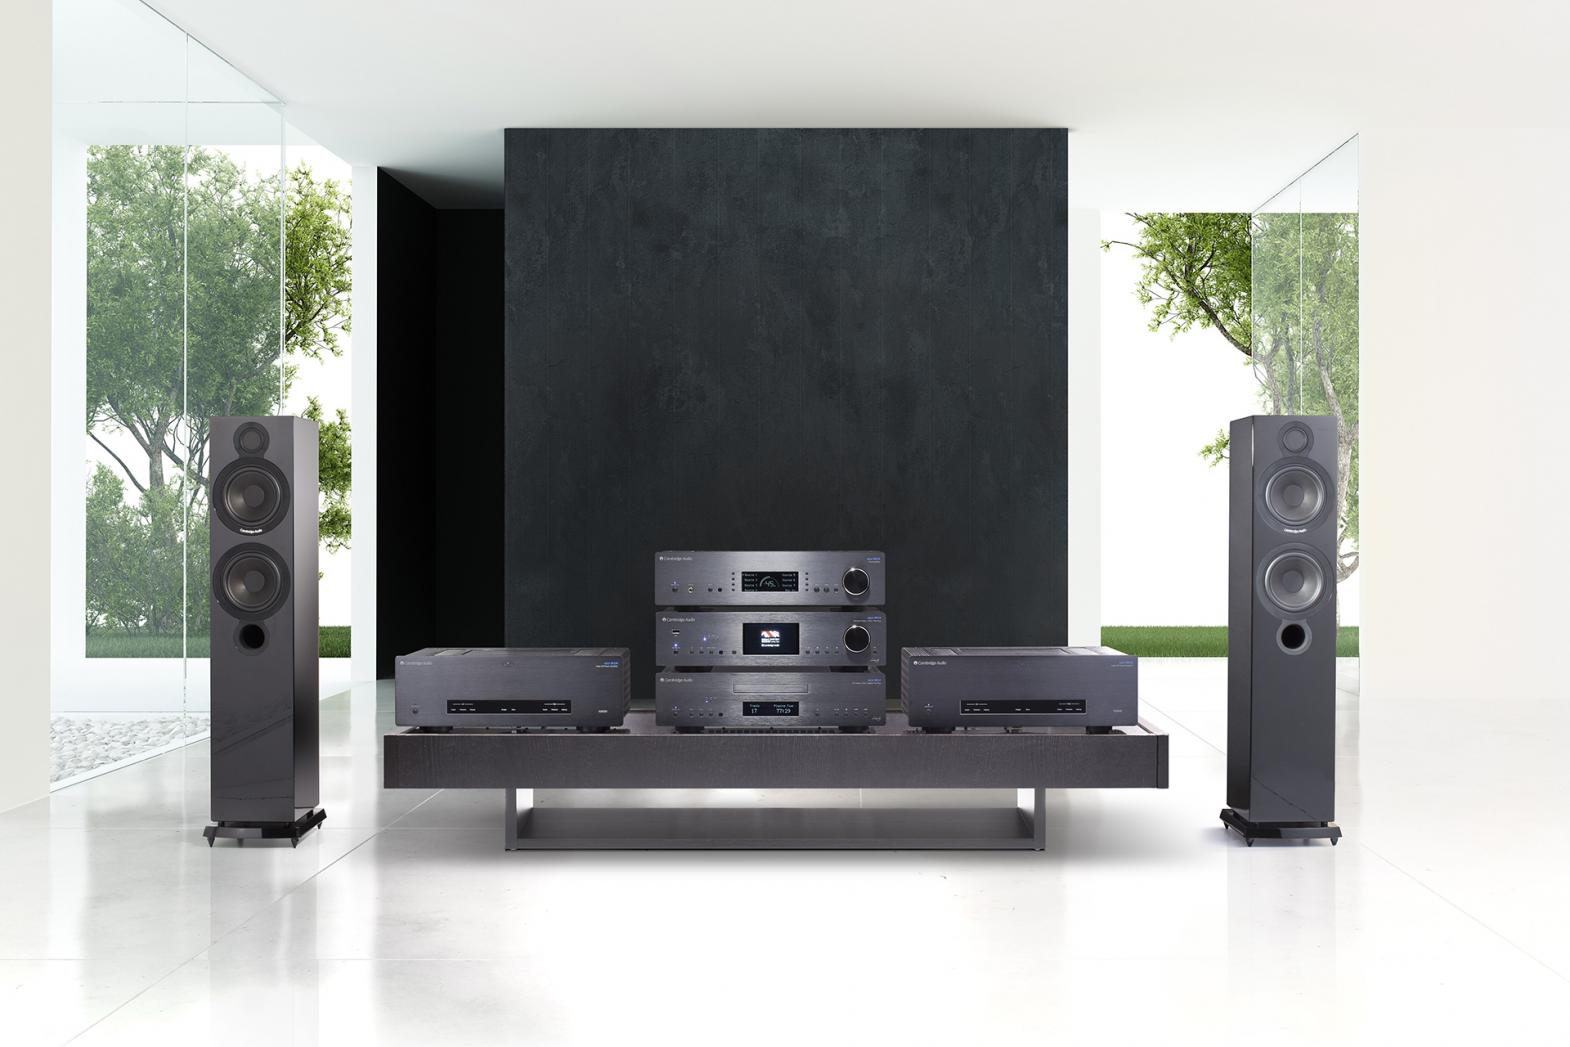 Full Azur 851 Series black setup in white room with tower speakers